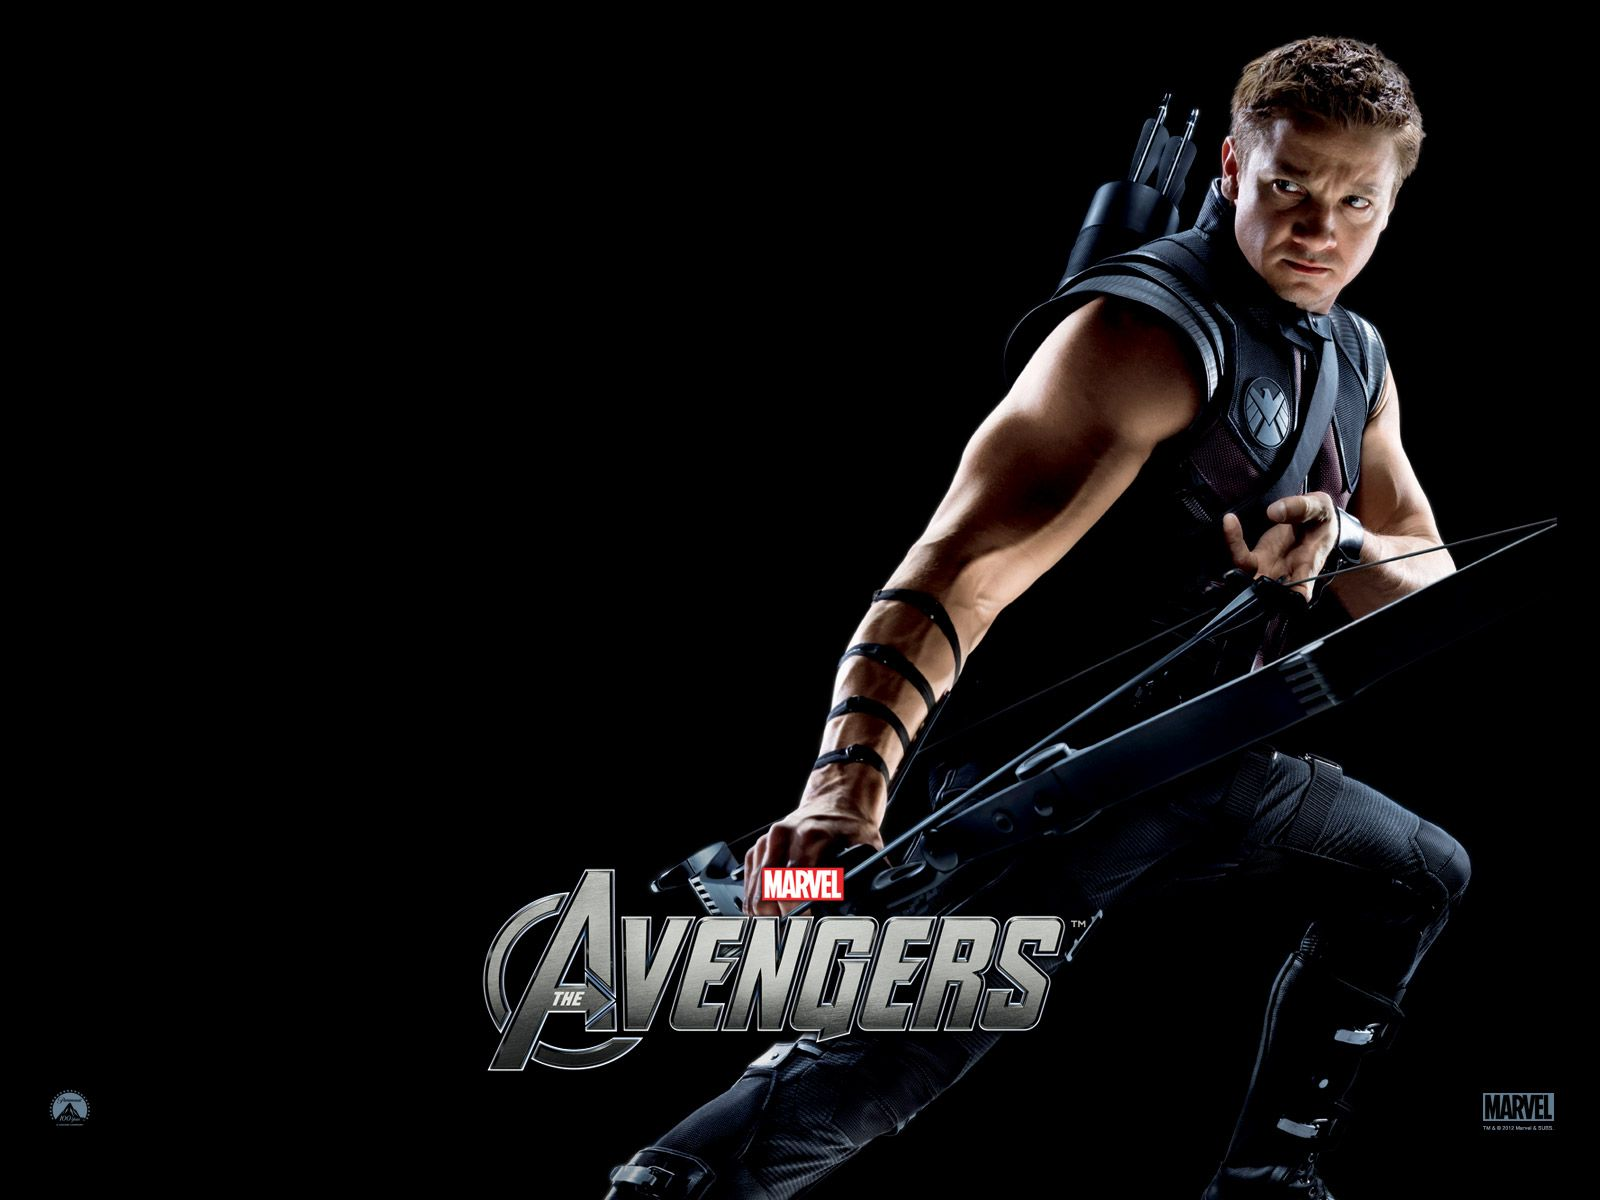 Marvel Hawkeye Logo Wallpapers   Top Marvel Hawkeye Logo 1600x1200